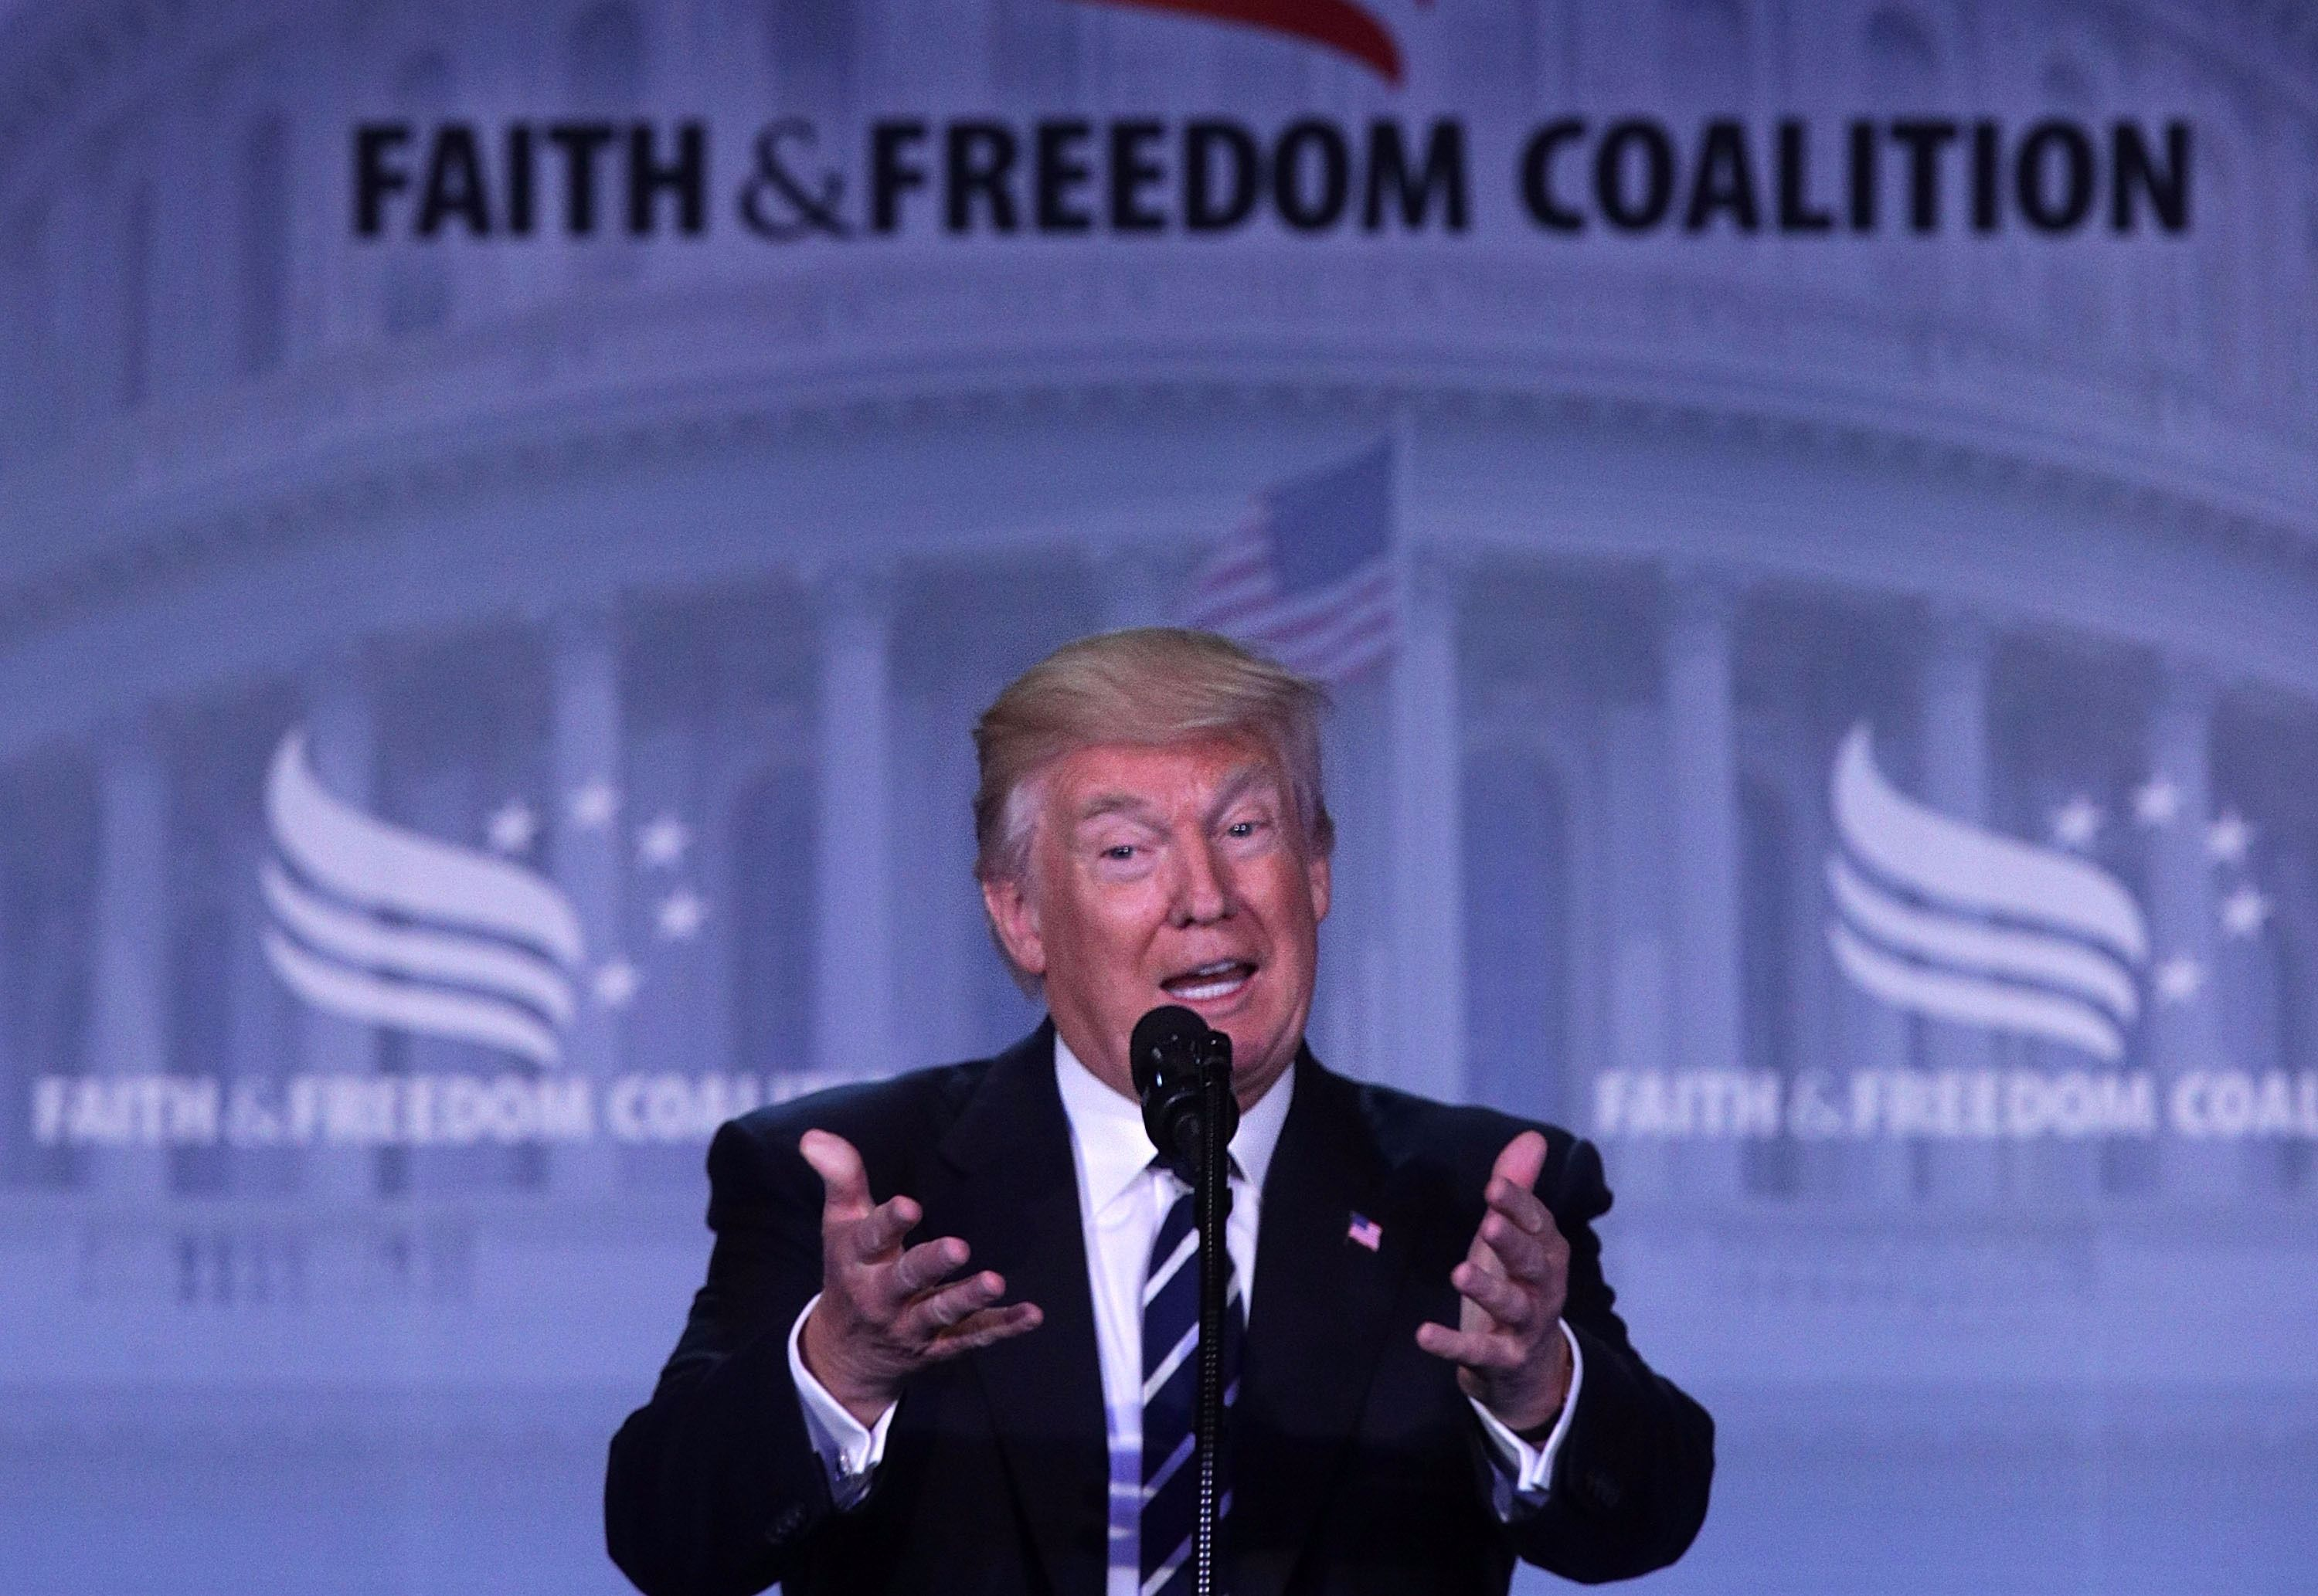 Donald Trump speaking at the Faith and Freedom Coalition, June 8, 2017